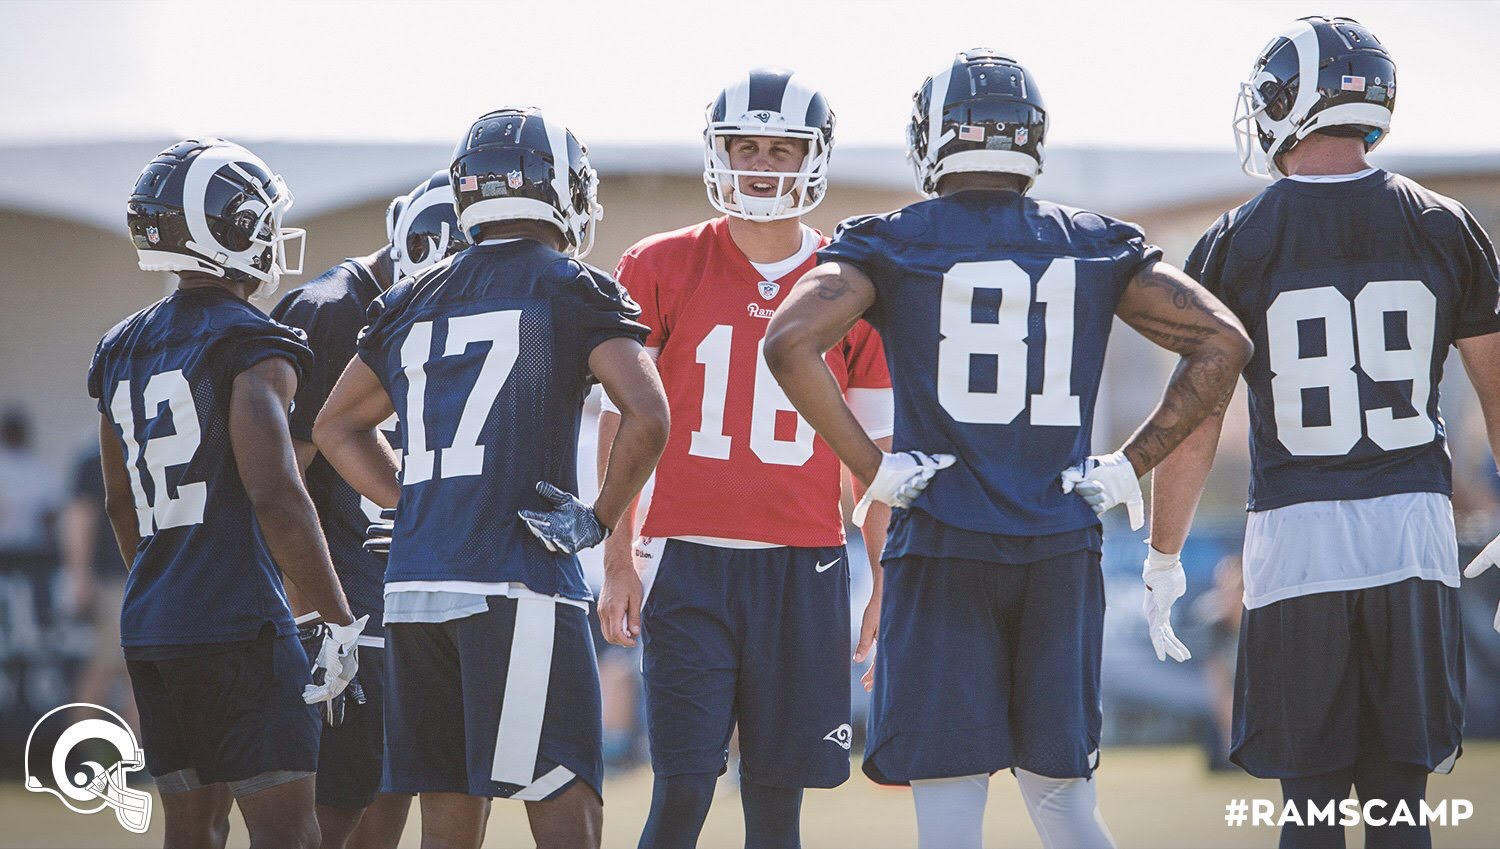 Contratos, Training camp y uniformes throwback de los Rams